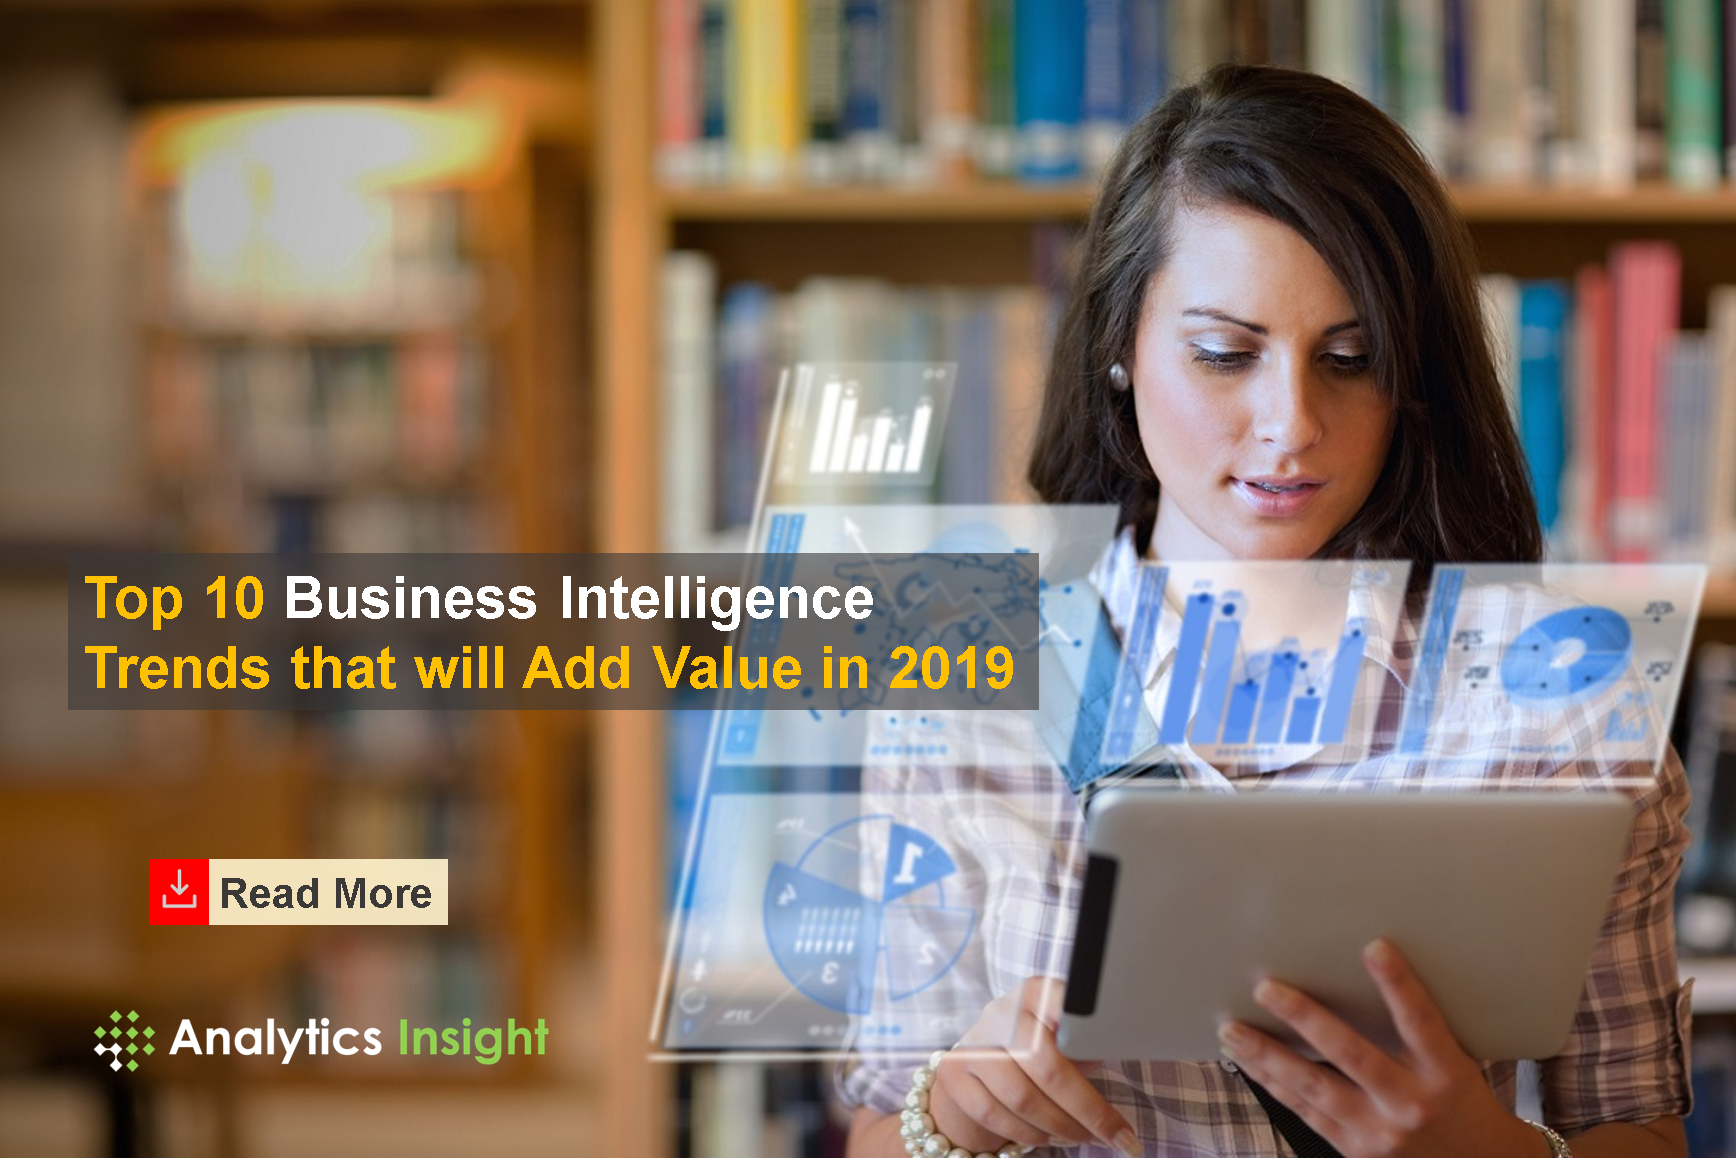 https://www.analyticsinsight.net/wp-content/uploads/2018/12/Top-10-Business-Intelligence-Trends-V1-1.png